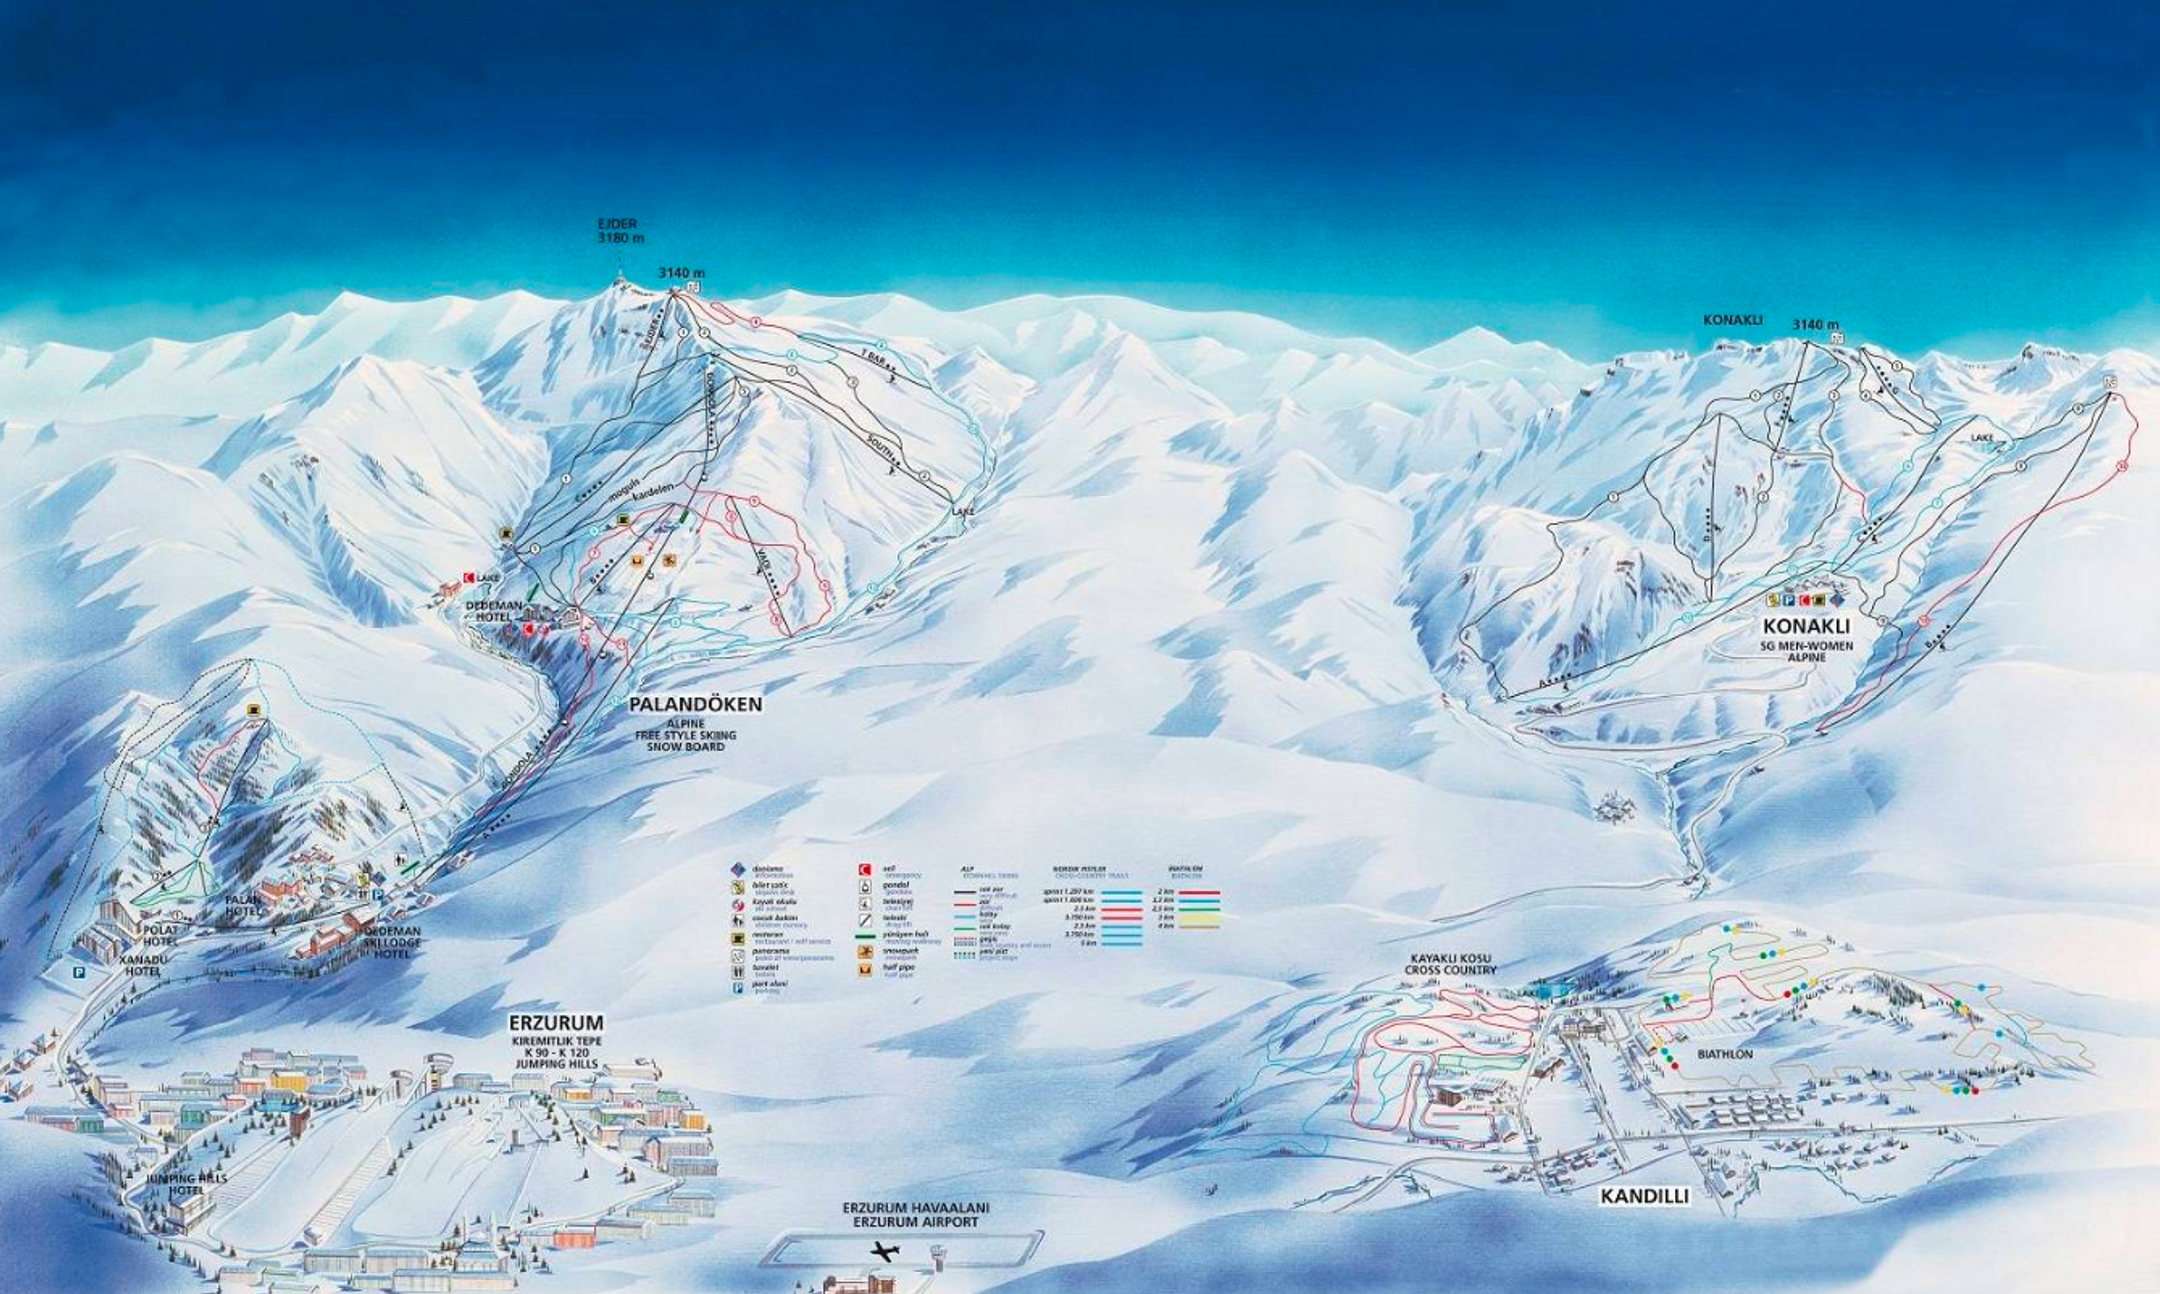 Ejder 3200 Palandoken ski-resort-trail-map Turkey ripatrip